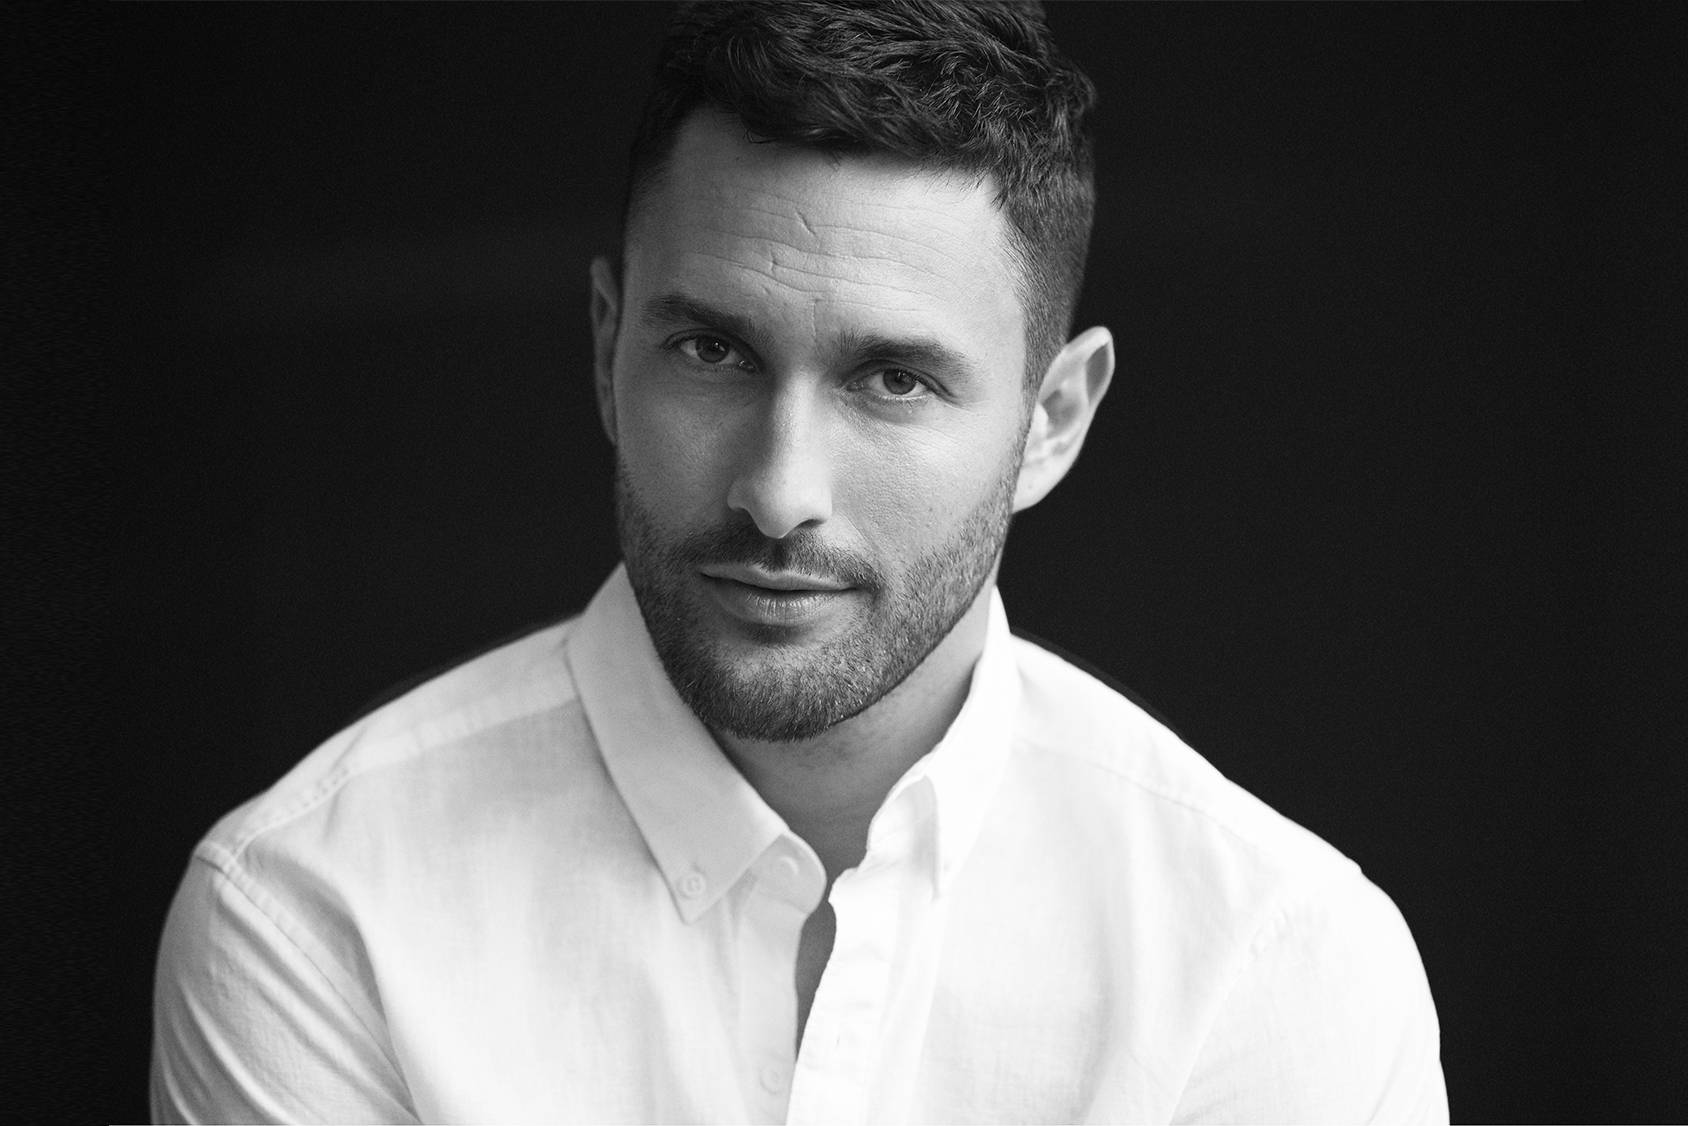 Noah Mills Most Handsome Man 2016